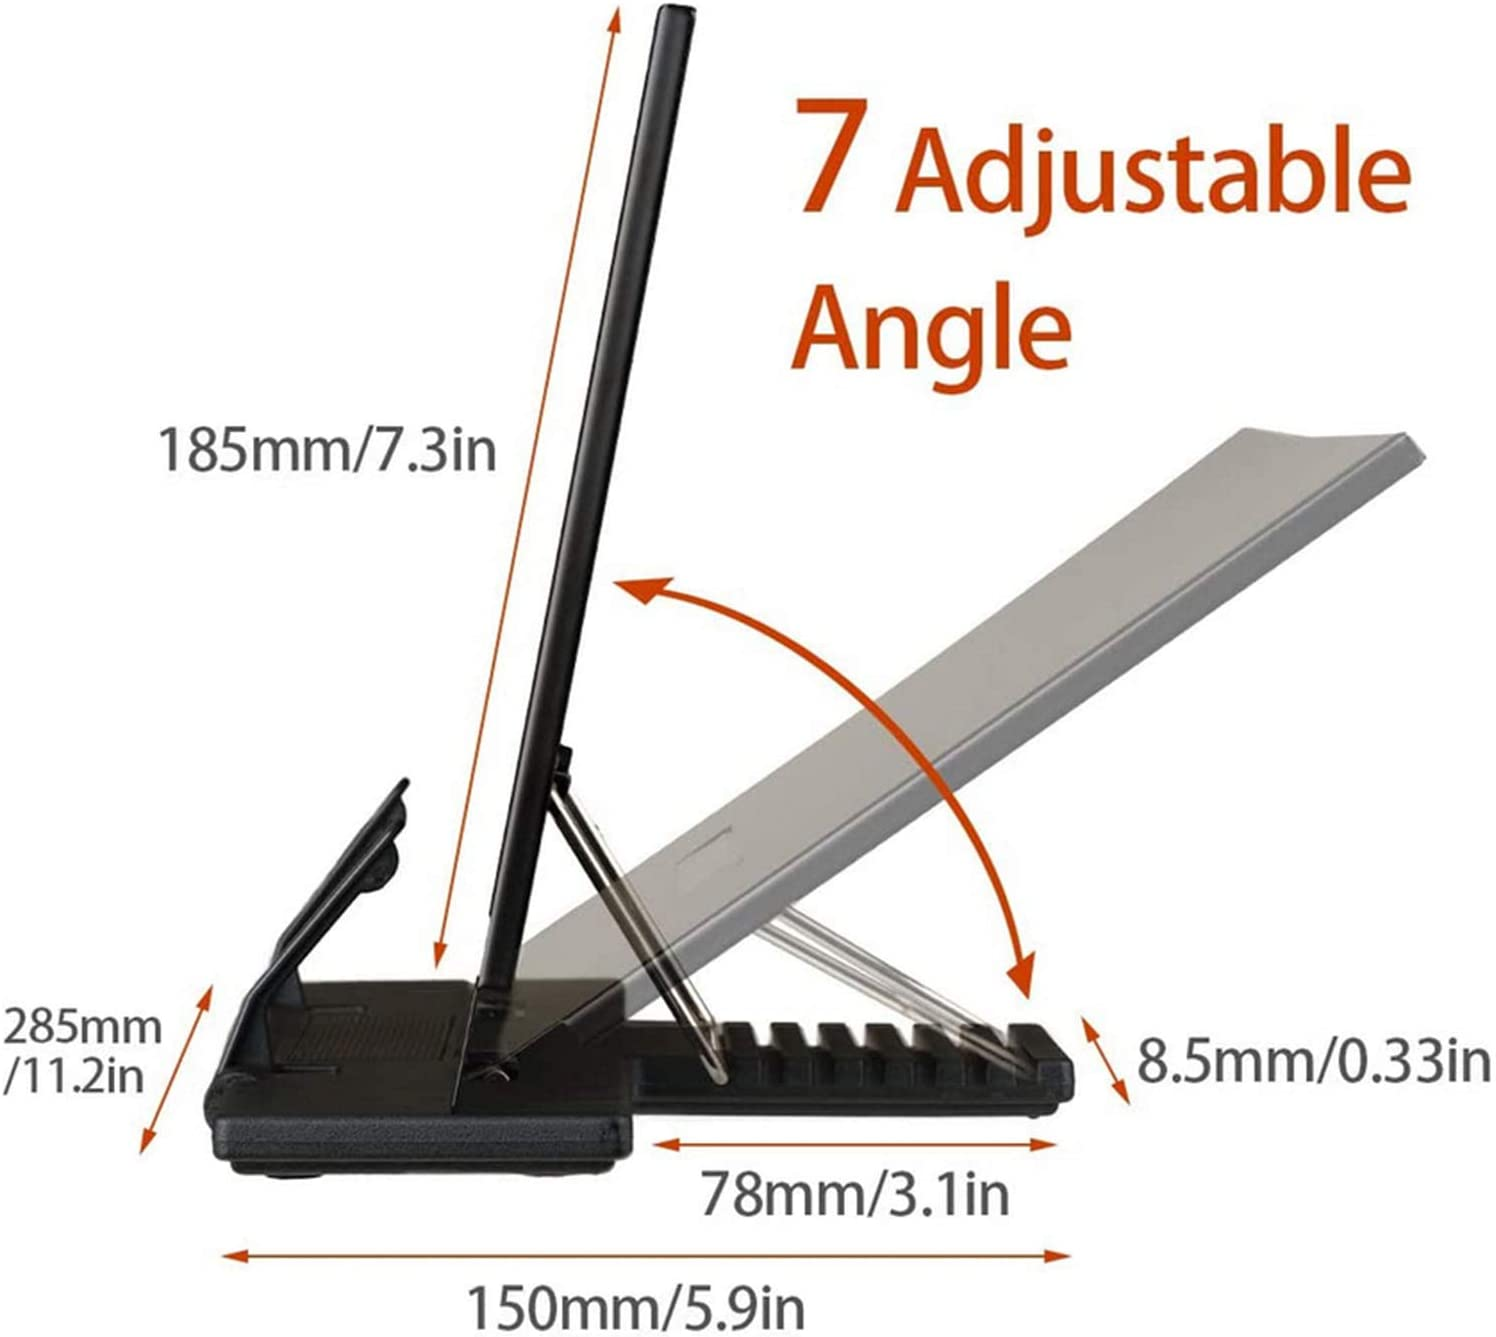 Anti-Slip Stable Bookend Cookbook Stand Cookbook Cook Book Holder Book Stand Recipe Cookbook Kitchen Bookrest Reading Rest Metal Portable Bookrest Adjustable Angle for Recipes Ipad Tablets (Black)